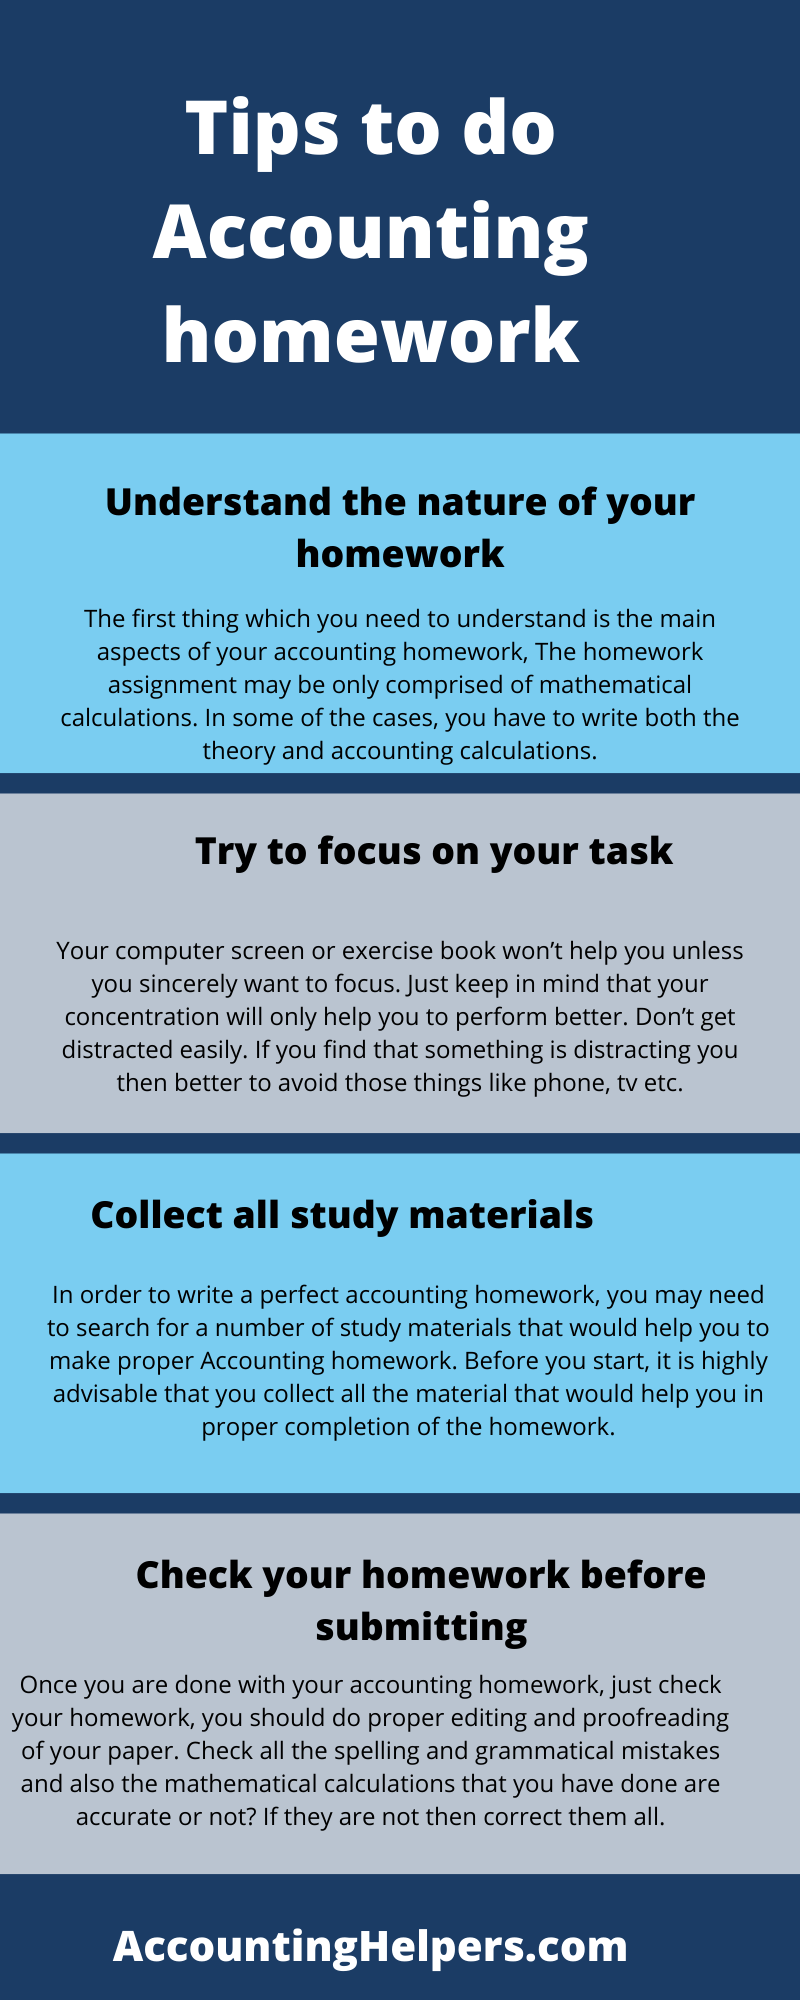 Tips-to-do-Accounting-homework